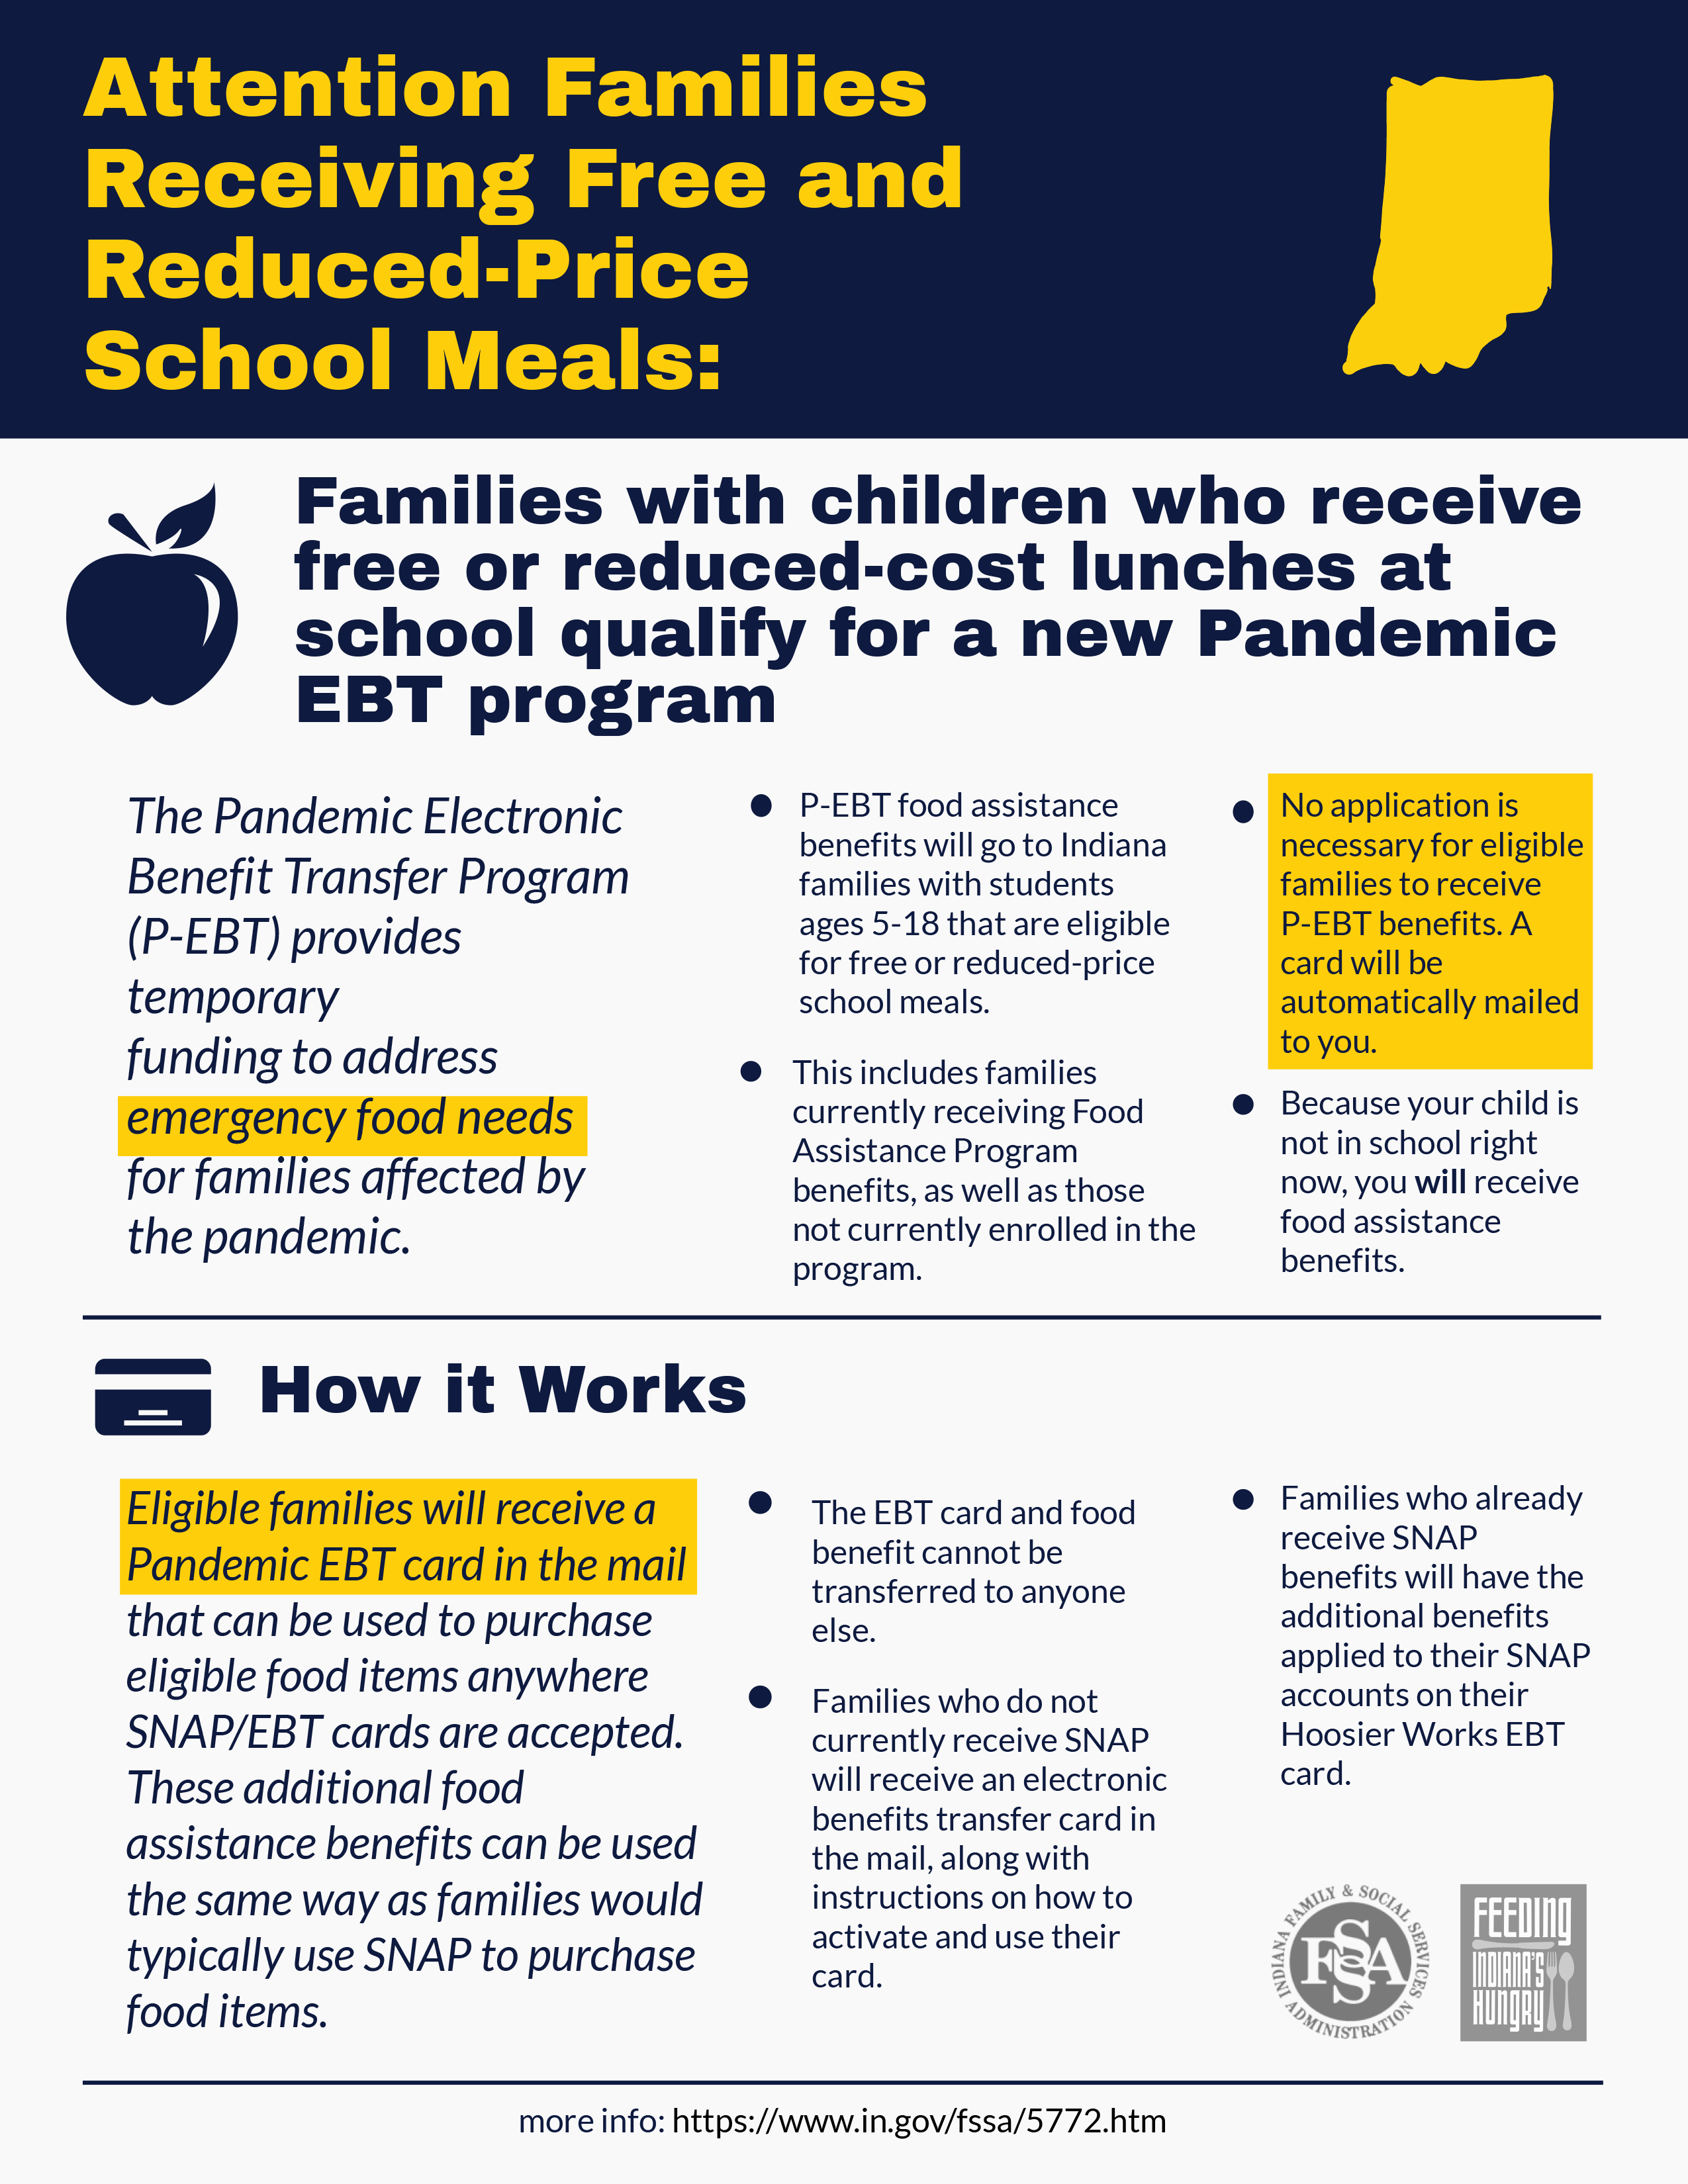 attention families receiving free and reduced-priced school meals flyer